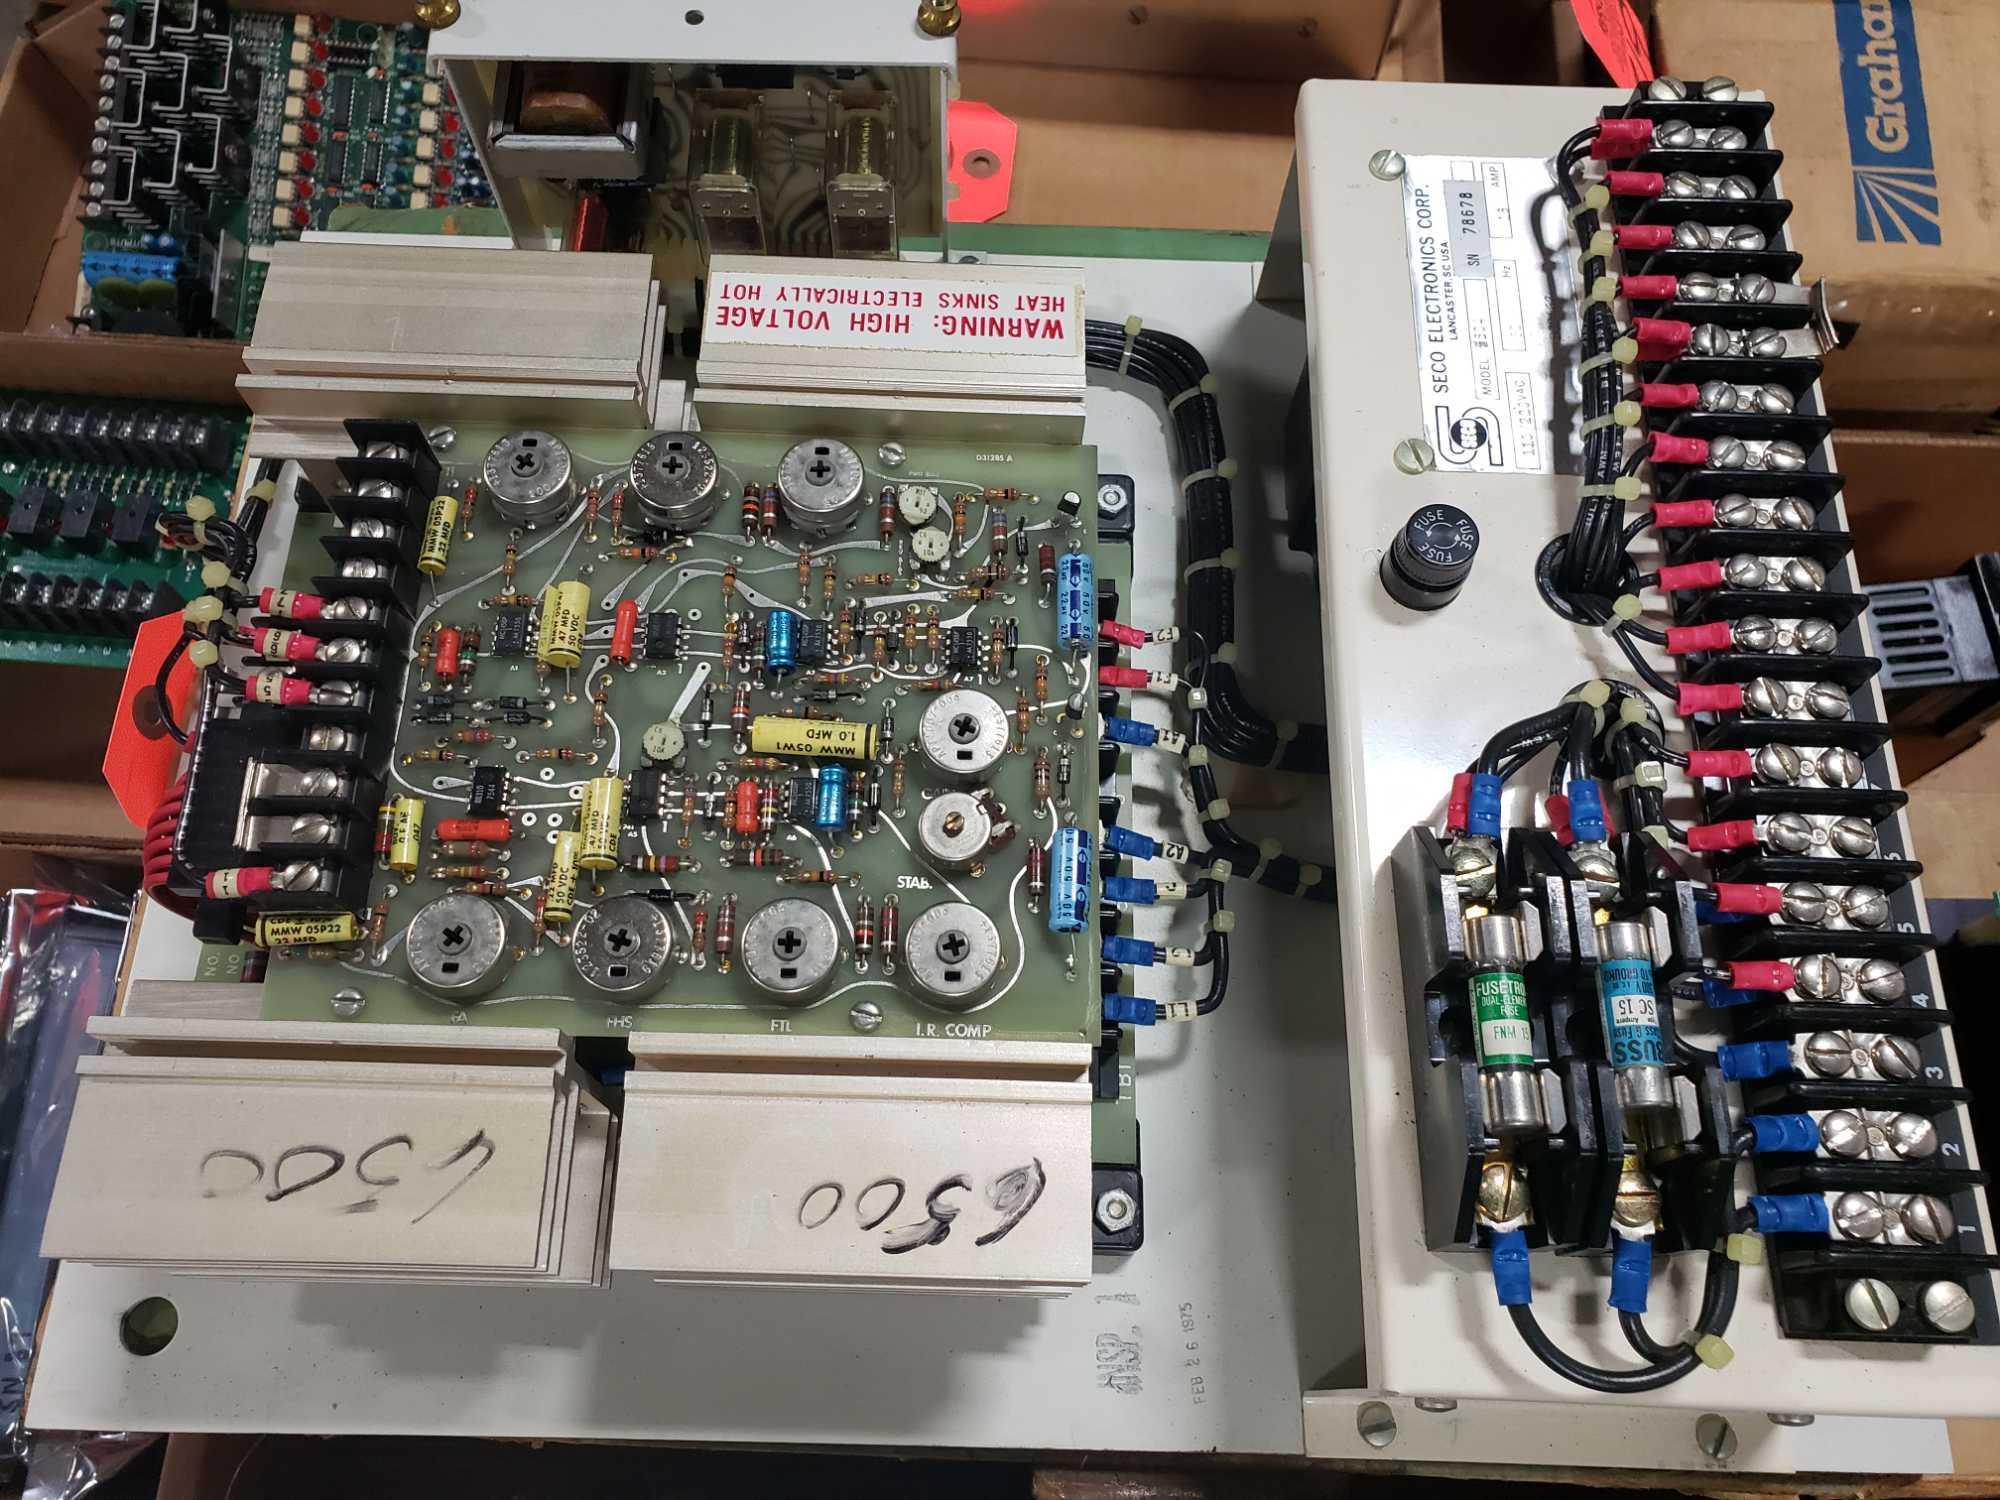 Seco Electronics model 86500 SCR motor control part 6504-N0.. New in box. - Image 3 of 3